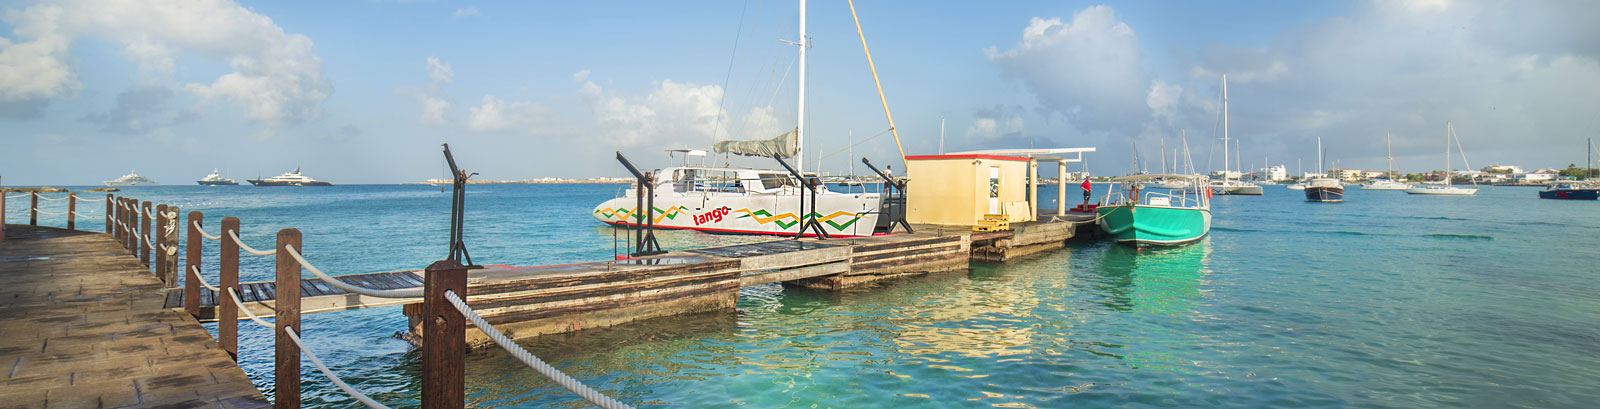 A Week of Fun with Aqua Mania in St. Maarten